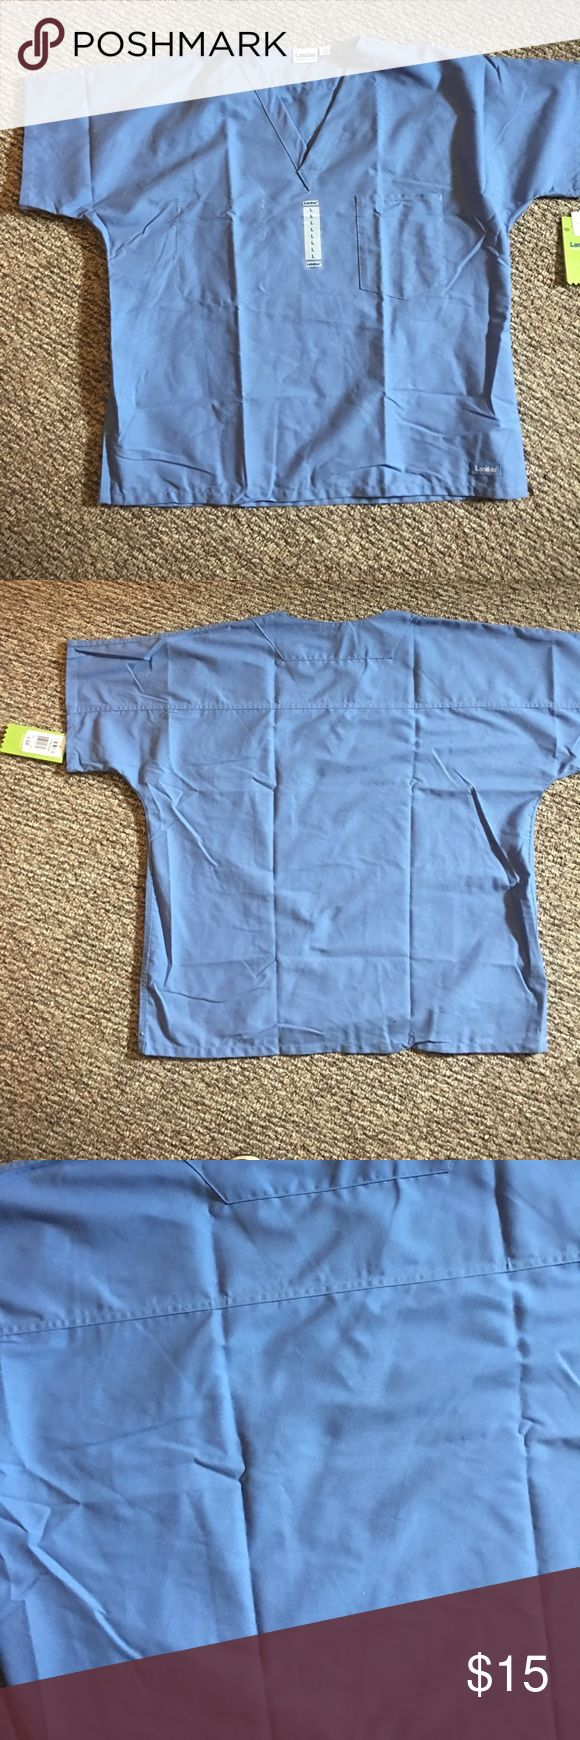 Landau Scrub Top Large NWT Ceil Blue Perfect Landau Scrub Top Large NWT Ceil Blue Perfect Top has Chest Pocket and is Reversible Offers Welcome Landau Tops